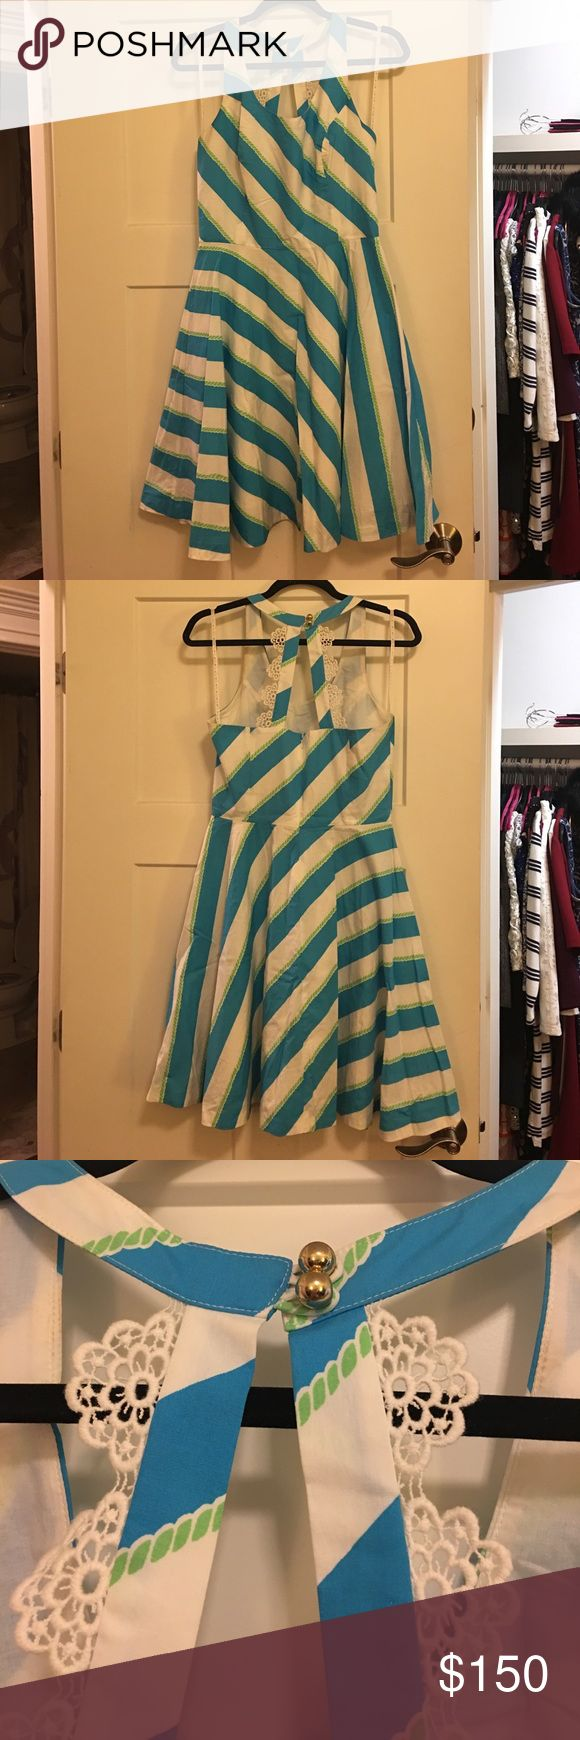 Lilly size 4 nautical spring dress! Super cute and lightweight, perfect spring dress with a fun fun flare! Nautical print - blue and aqua stripe with a green rope pattern. Back is very feminine, white lace appliqué and gold bead fasteners. Sorry for the wrinkles, been in the closet all winter!! Lilly Pulitzer Dresses